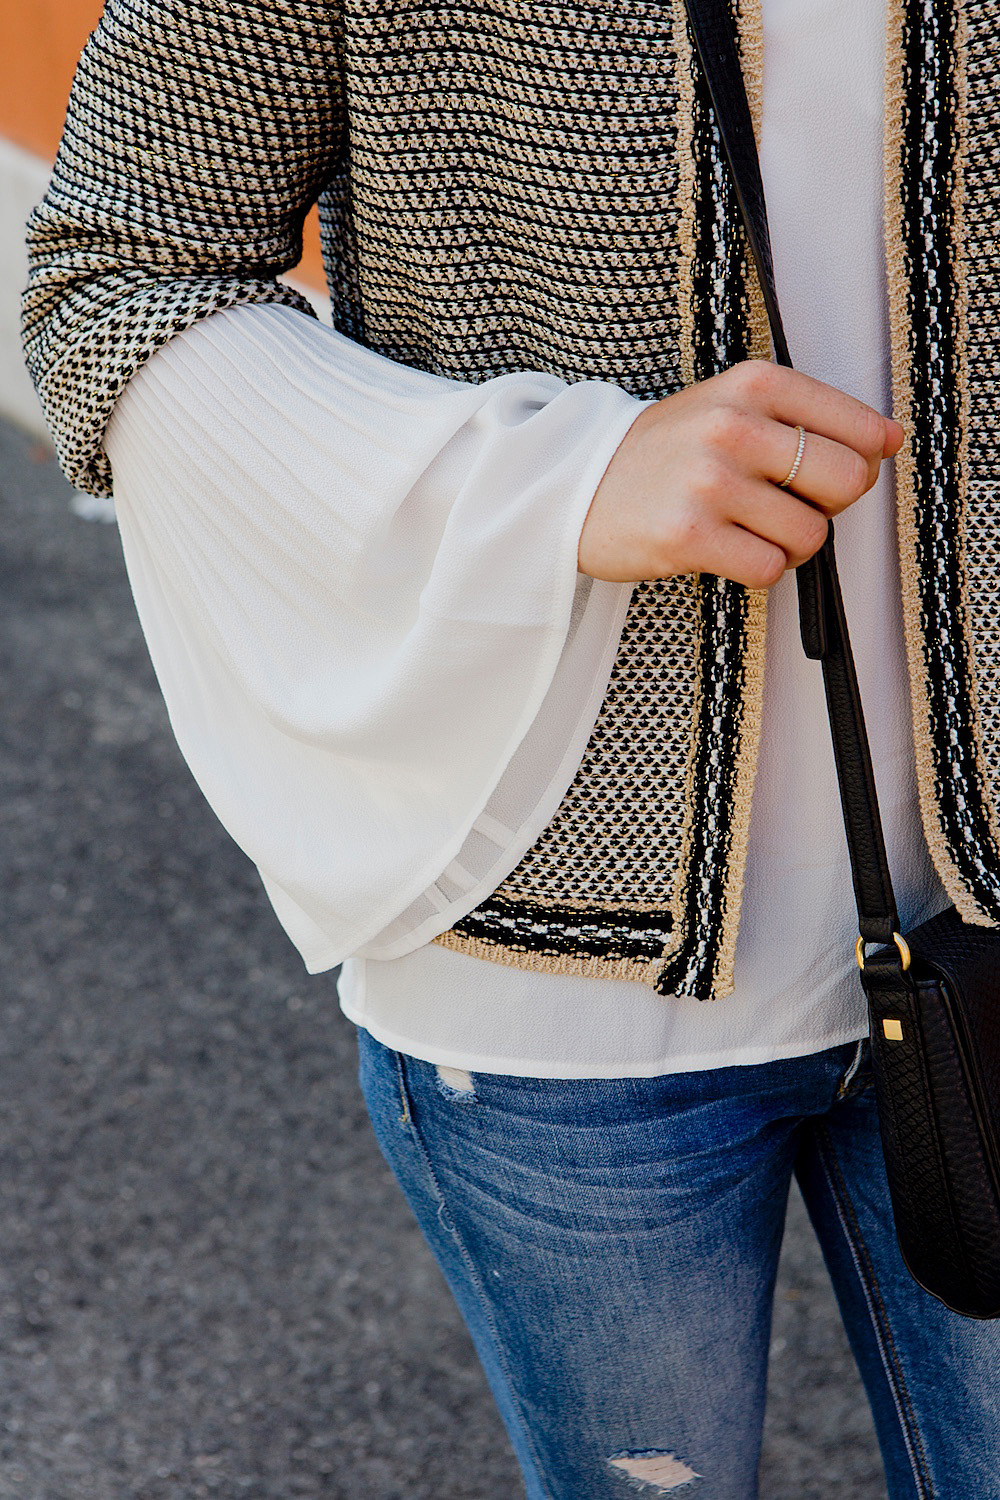 Transition into fall | autumn look inspiration - More & More Bouclé Jacket, white blouse, jeans, Superga